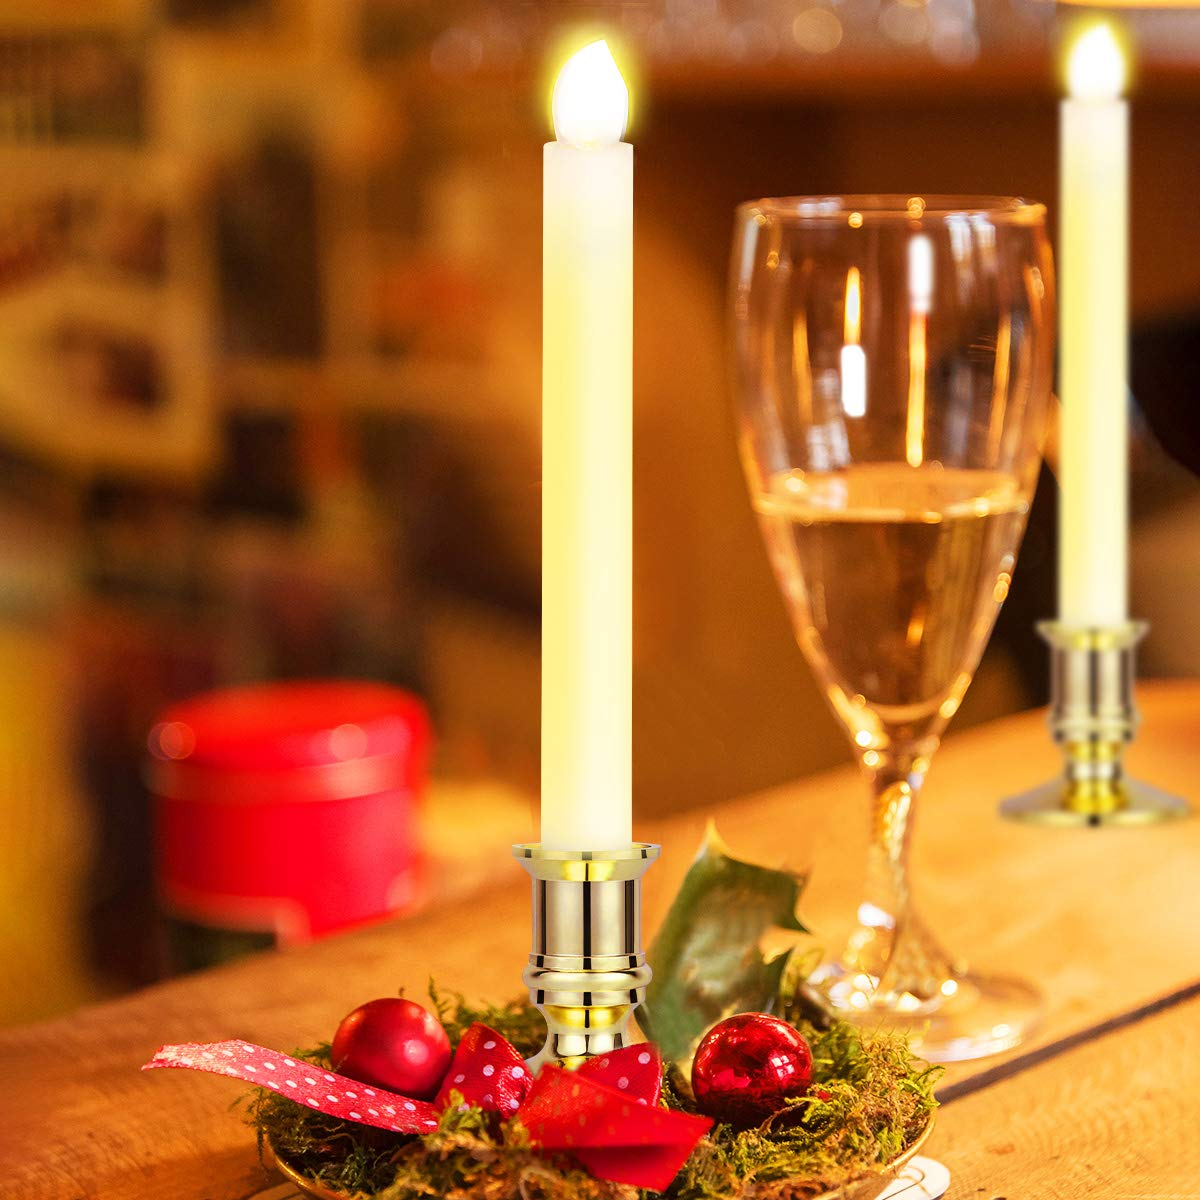 Window Candles Lights, YUNLIGHTS 12 Pack Battery Powered Window Candles Flameless Taper Candles with Remote Control, Timer, Removable Gold Holders, Suction Cups, Warm White Hanukkah Candles by YUNLIGHTS (Image #3)